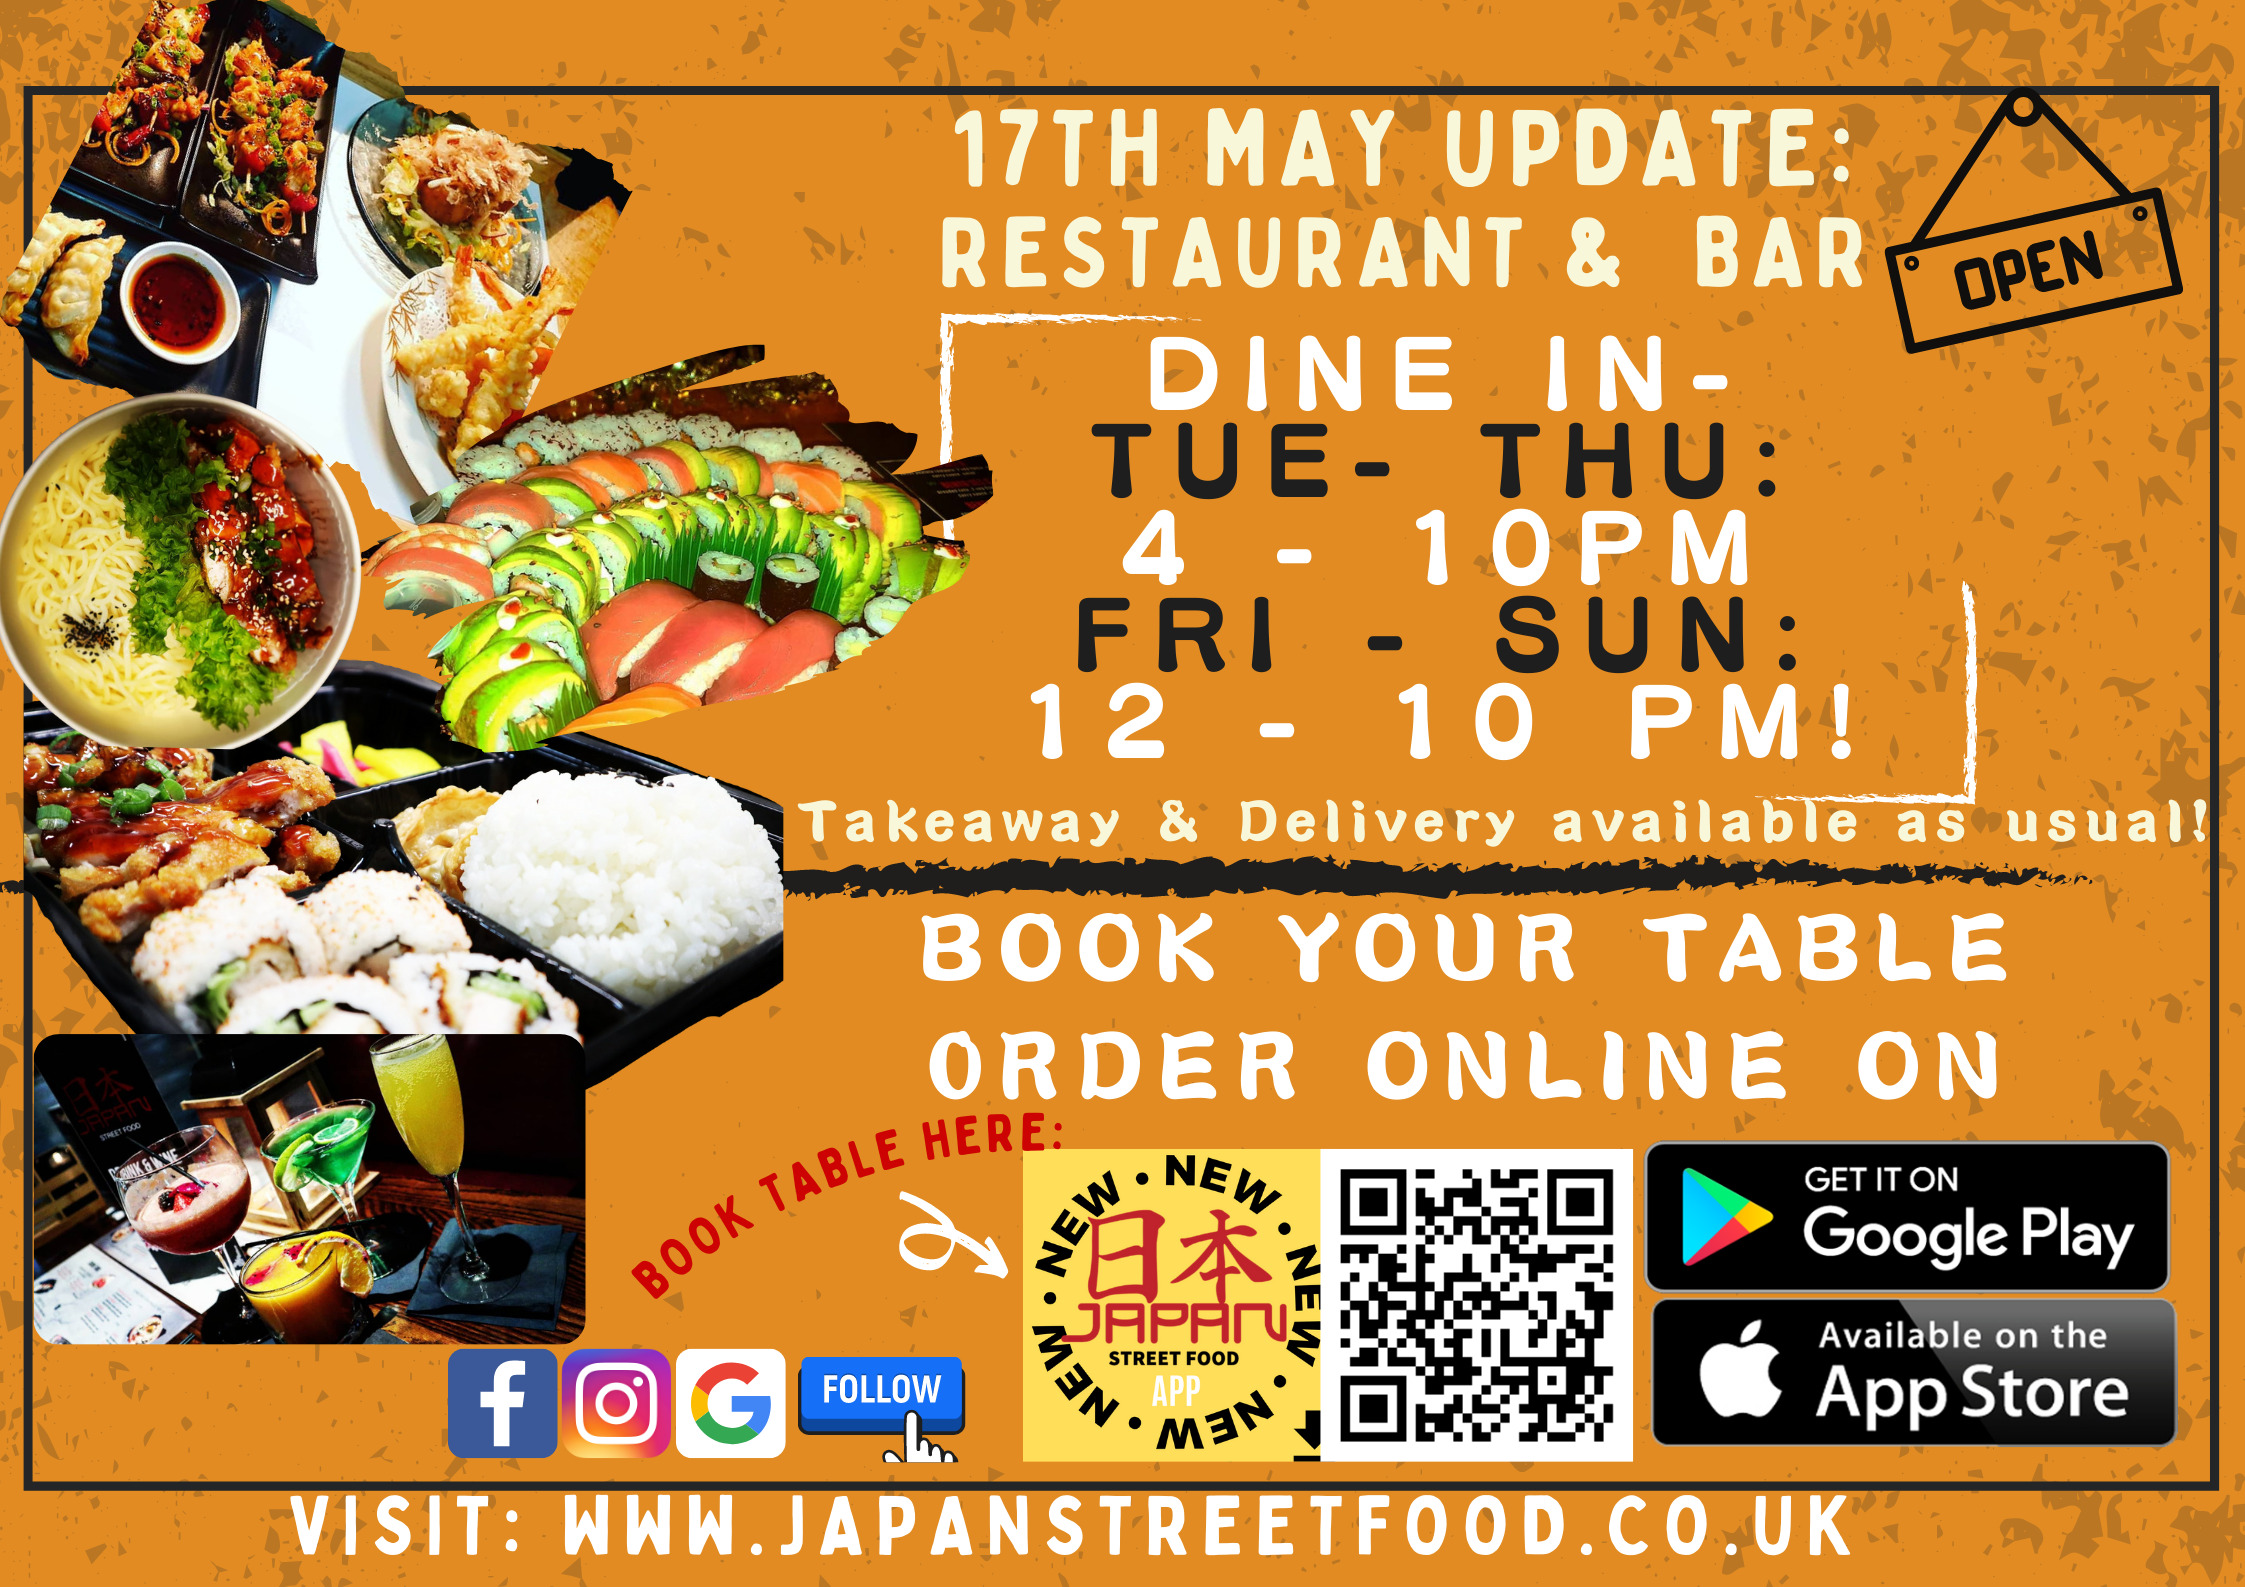 Dine in restaurant and licensed bar open in level 2 alcohol indoors permitted serving Japanese food and drink Japan Street Food Paisley